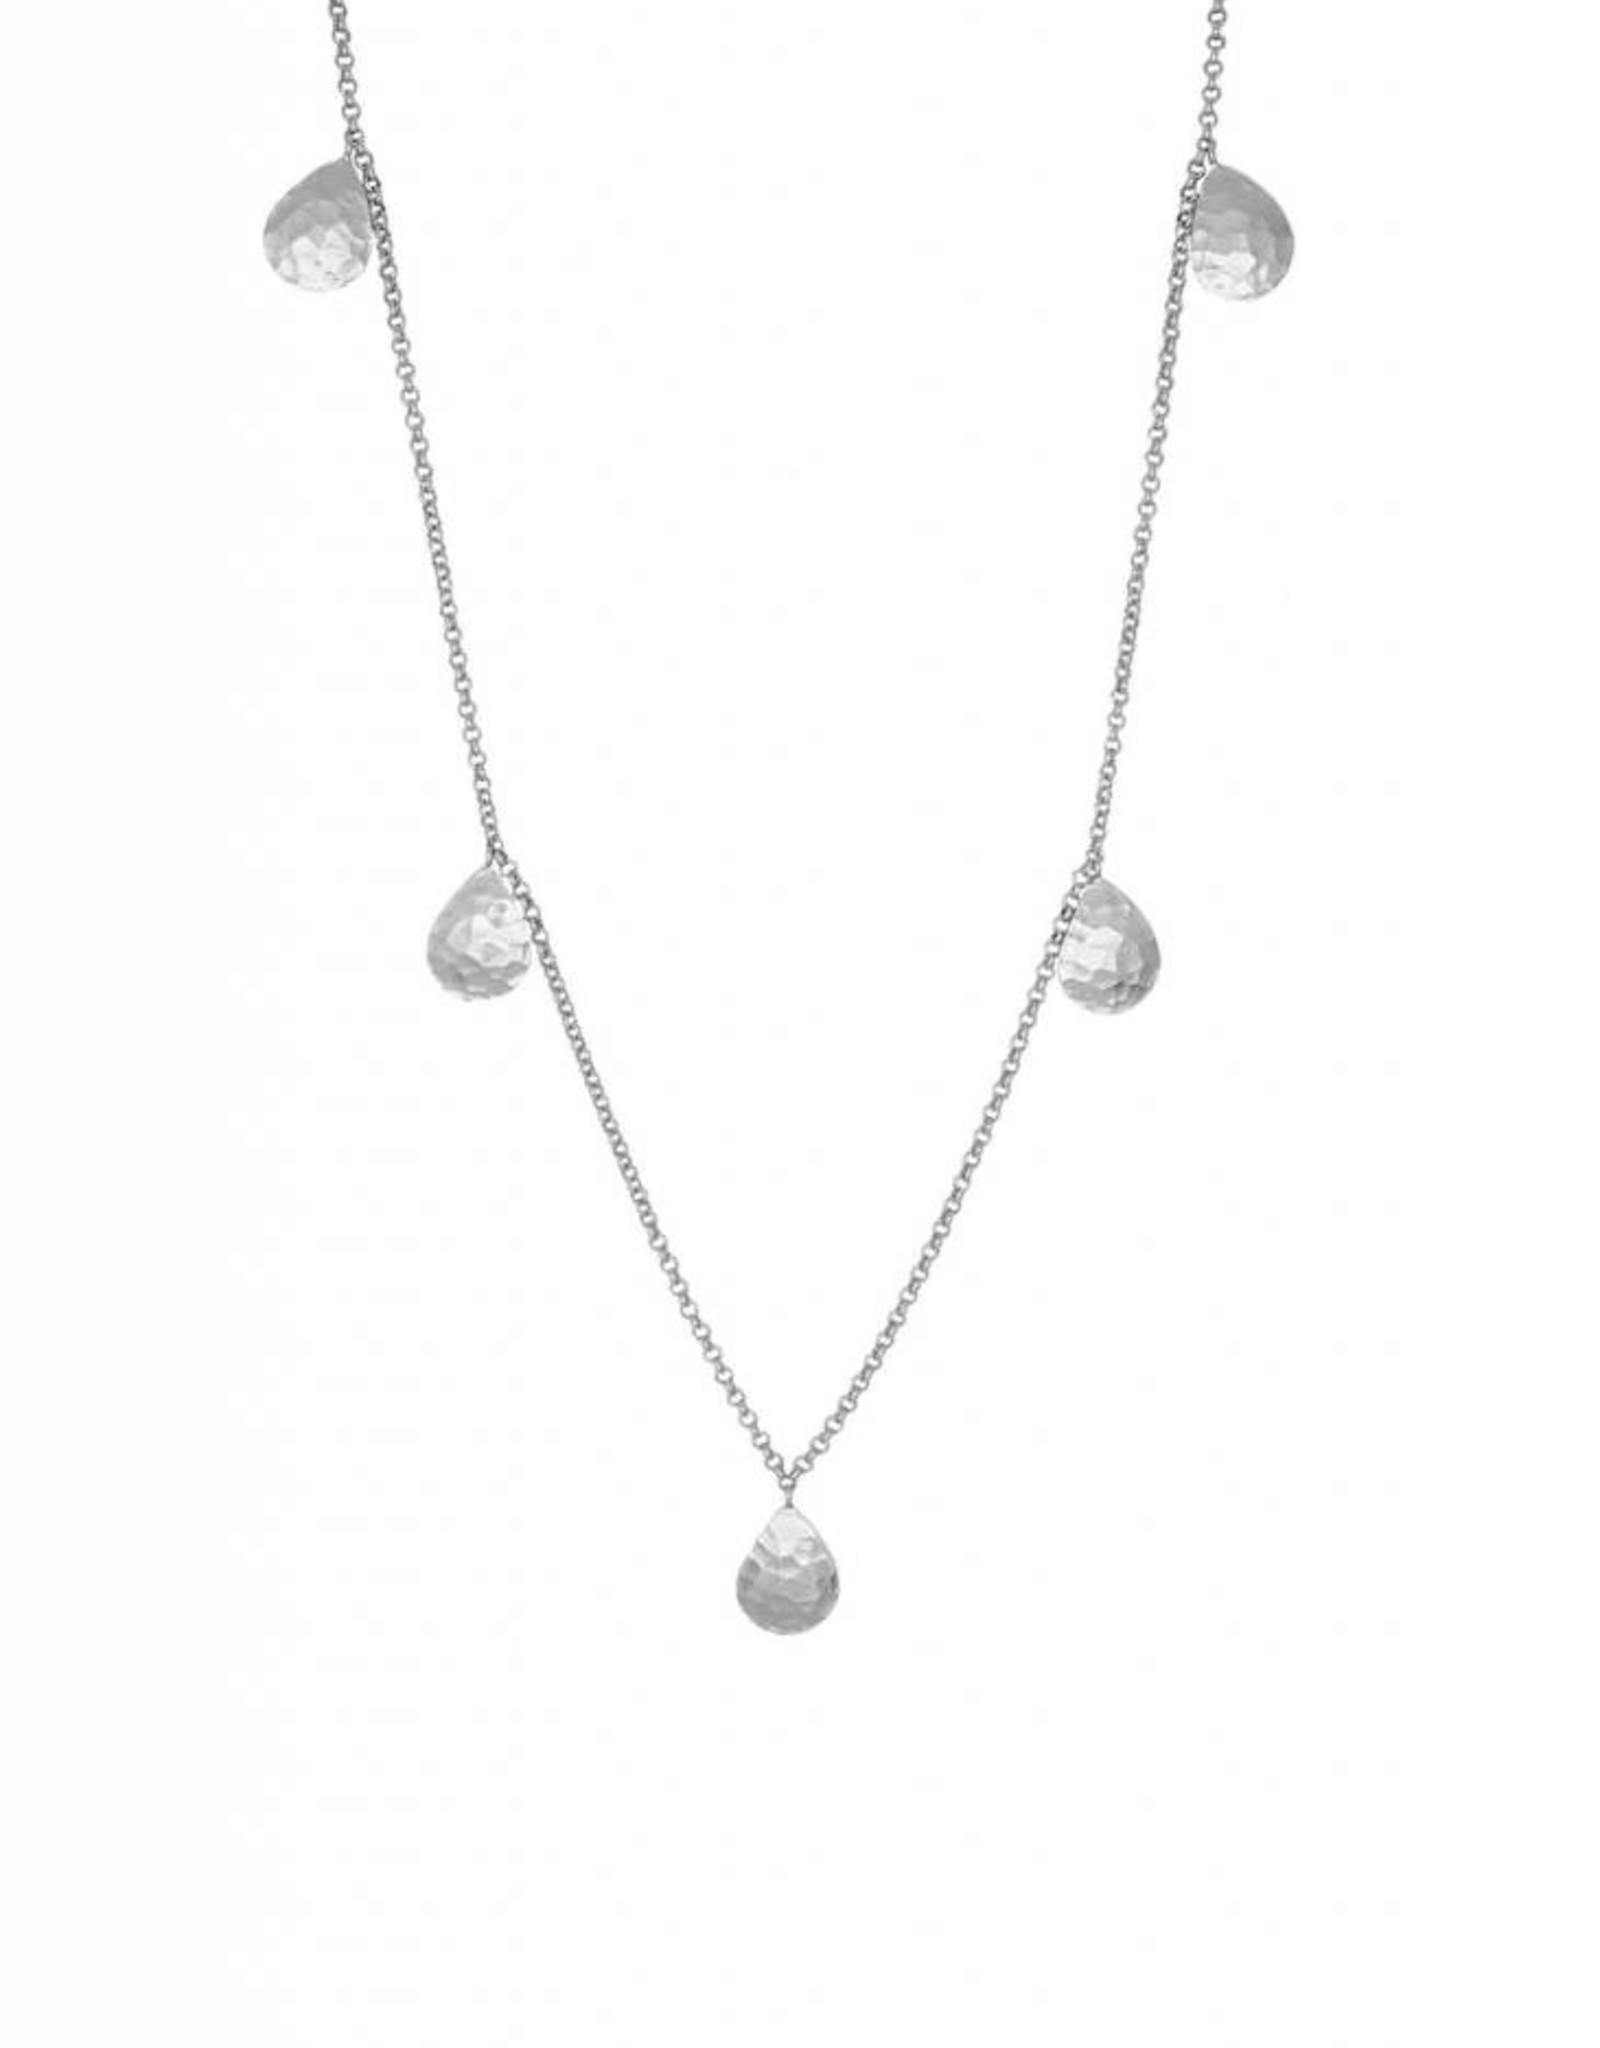 TALIA LONG TEAR DROP NECKLACE SILVER